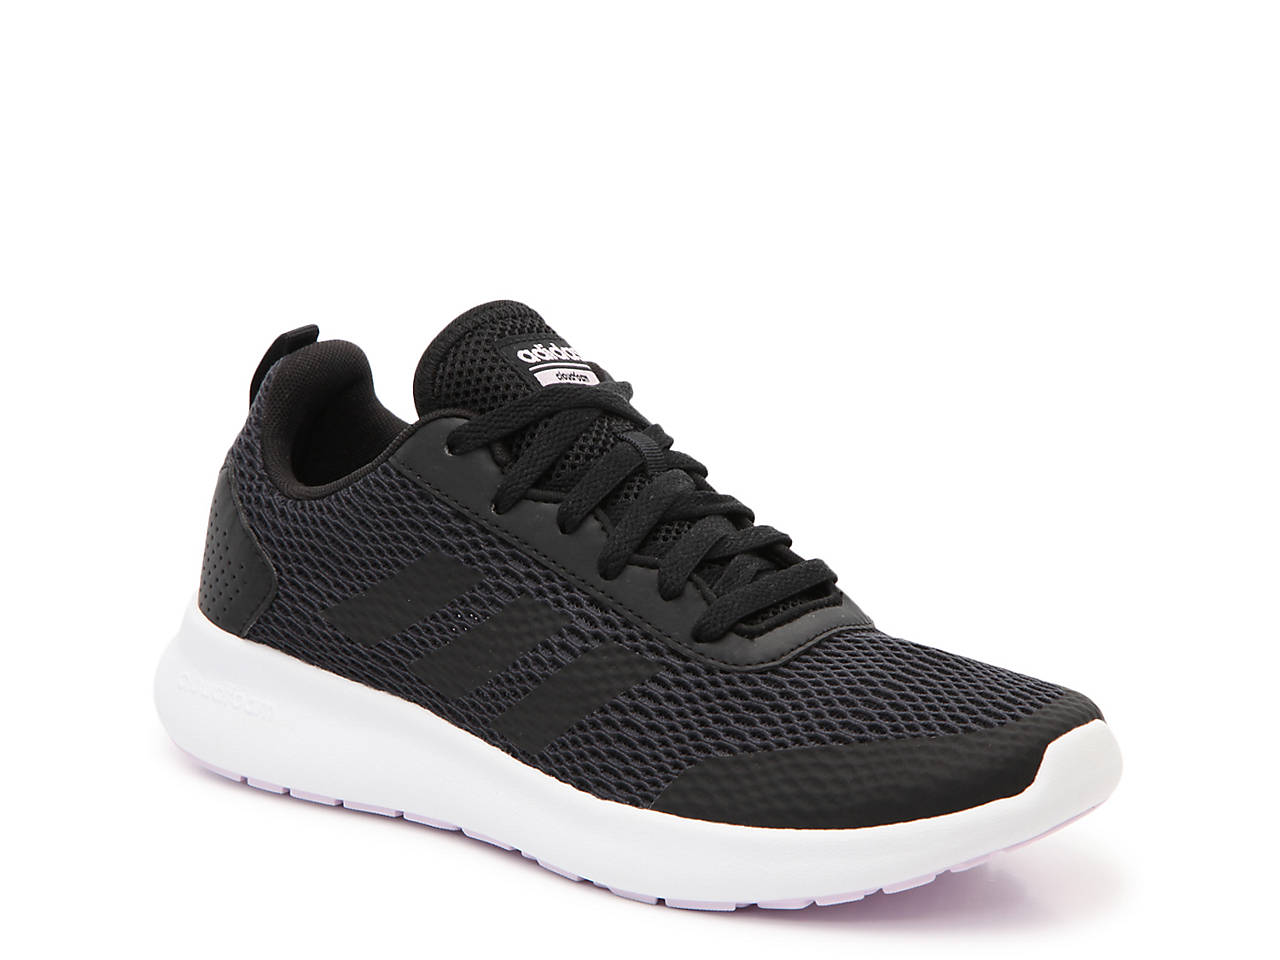 DSW Women's Shoes adidas Sneaker Element Race Women's 84wFY